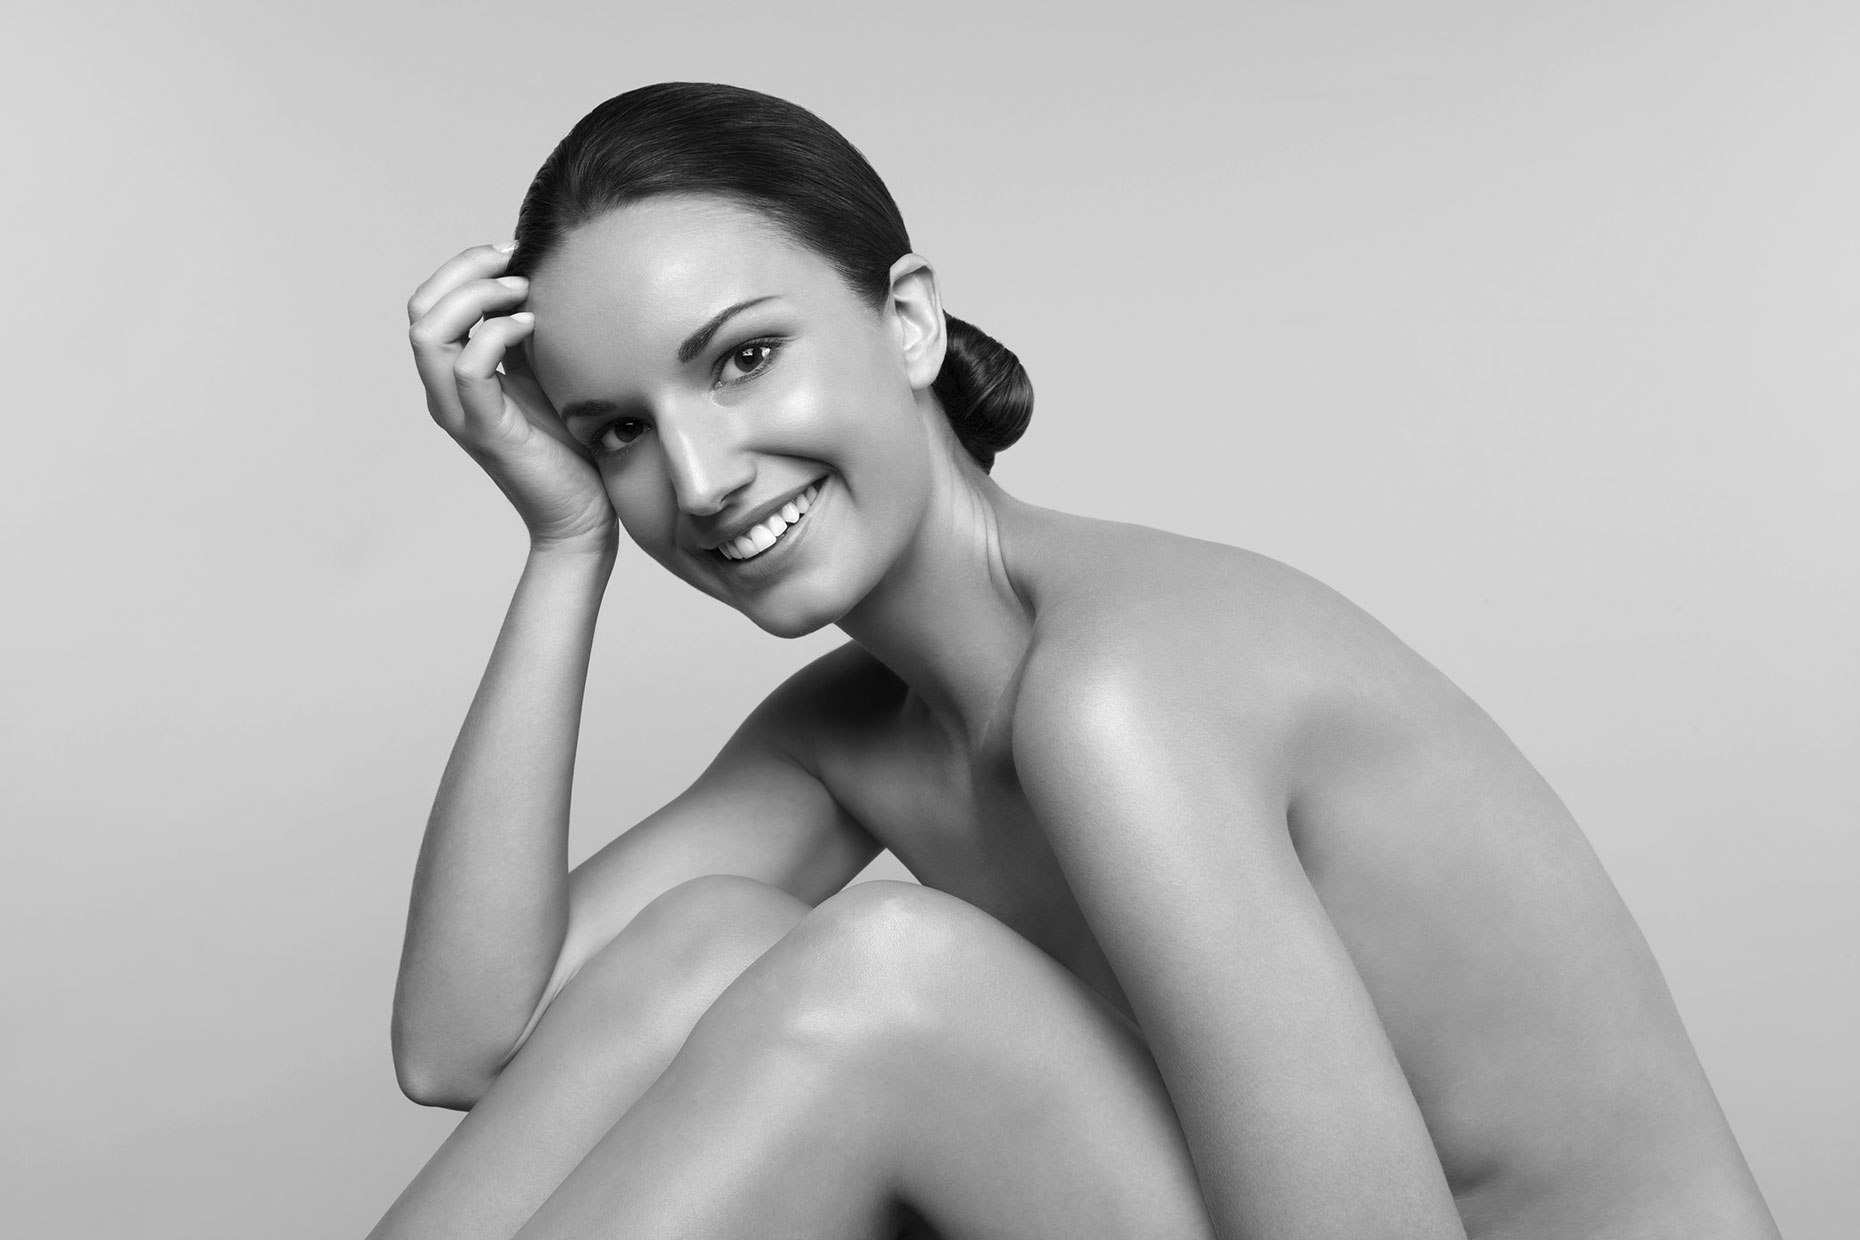 Smiling nude young resting head on hand.